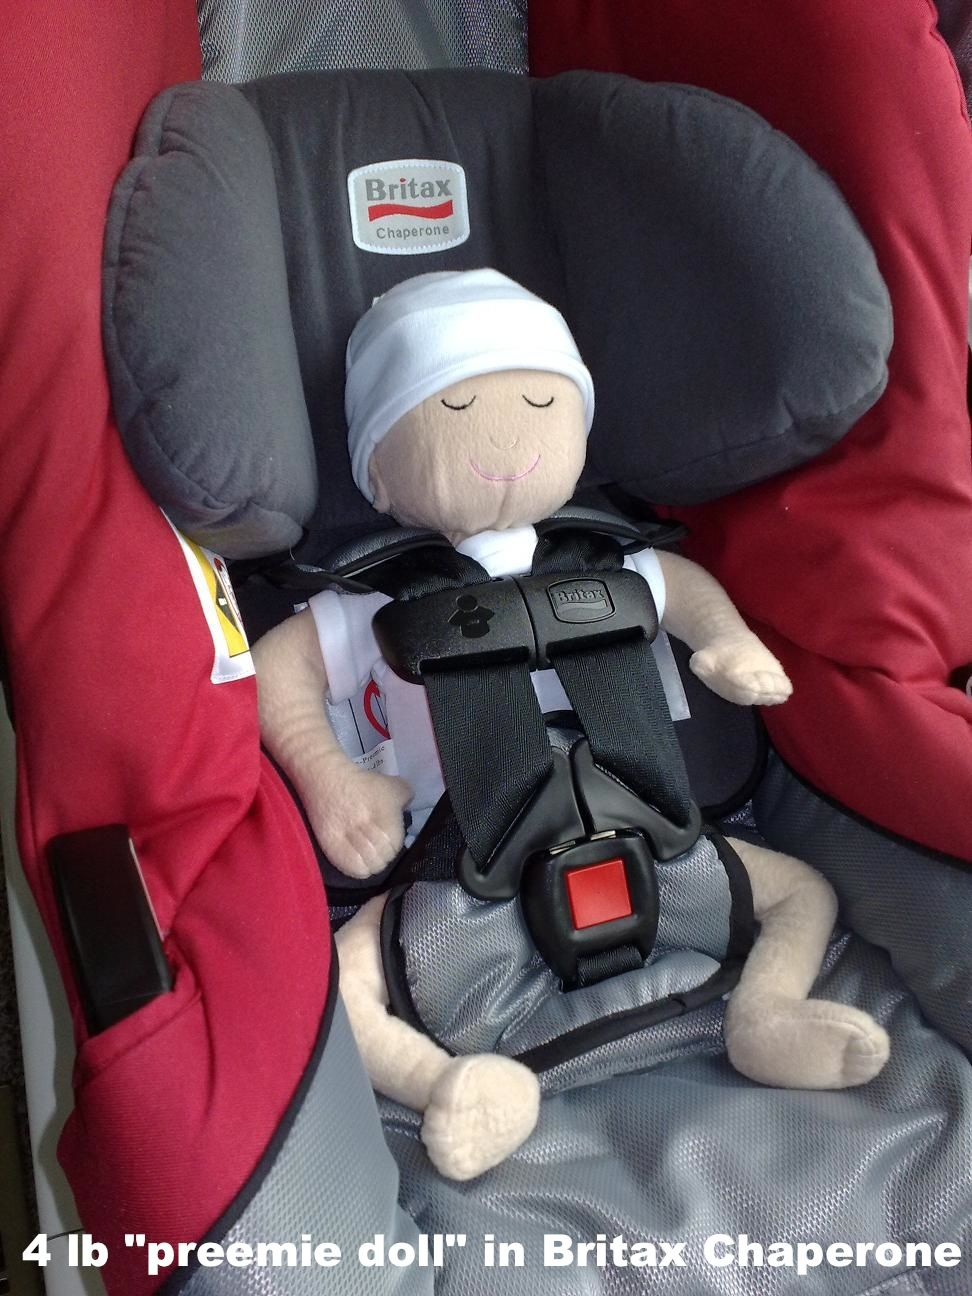 Car Seat Tips For Preemies Small Newborns Are You Taking Home A Baby Weighing Less Than 5 Pounds The Lady